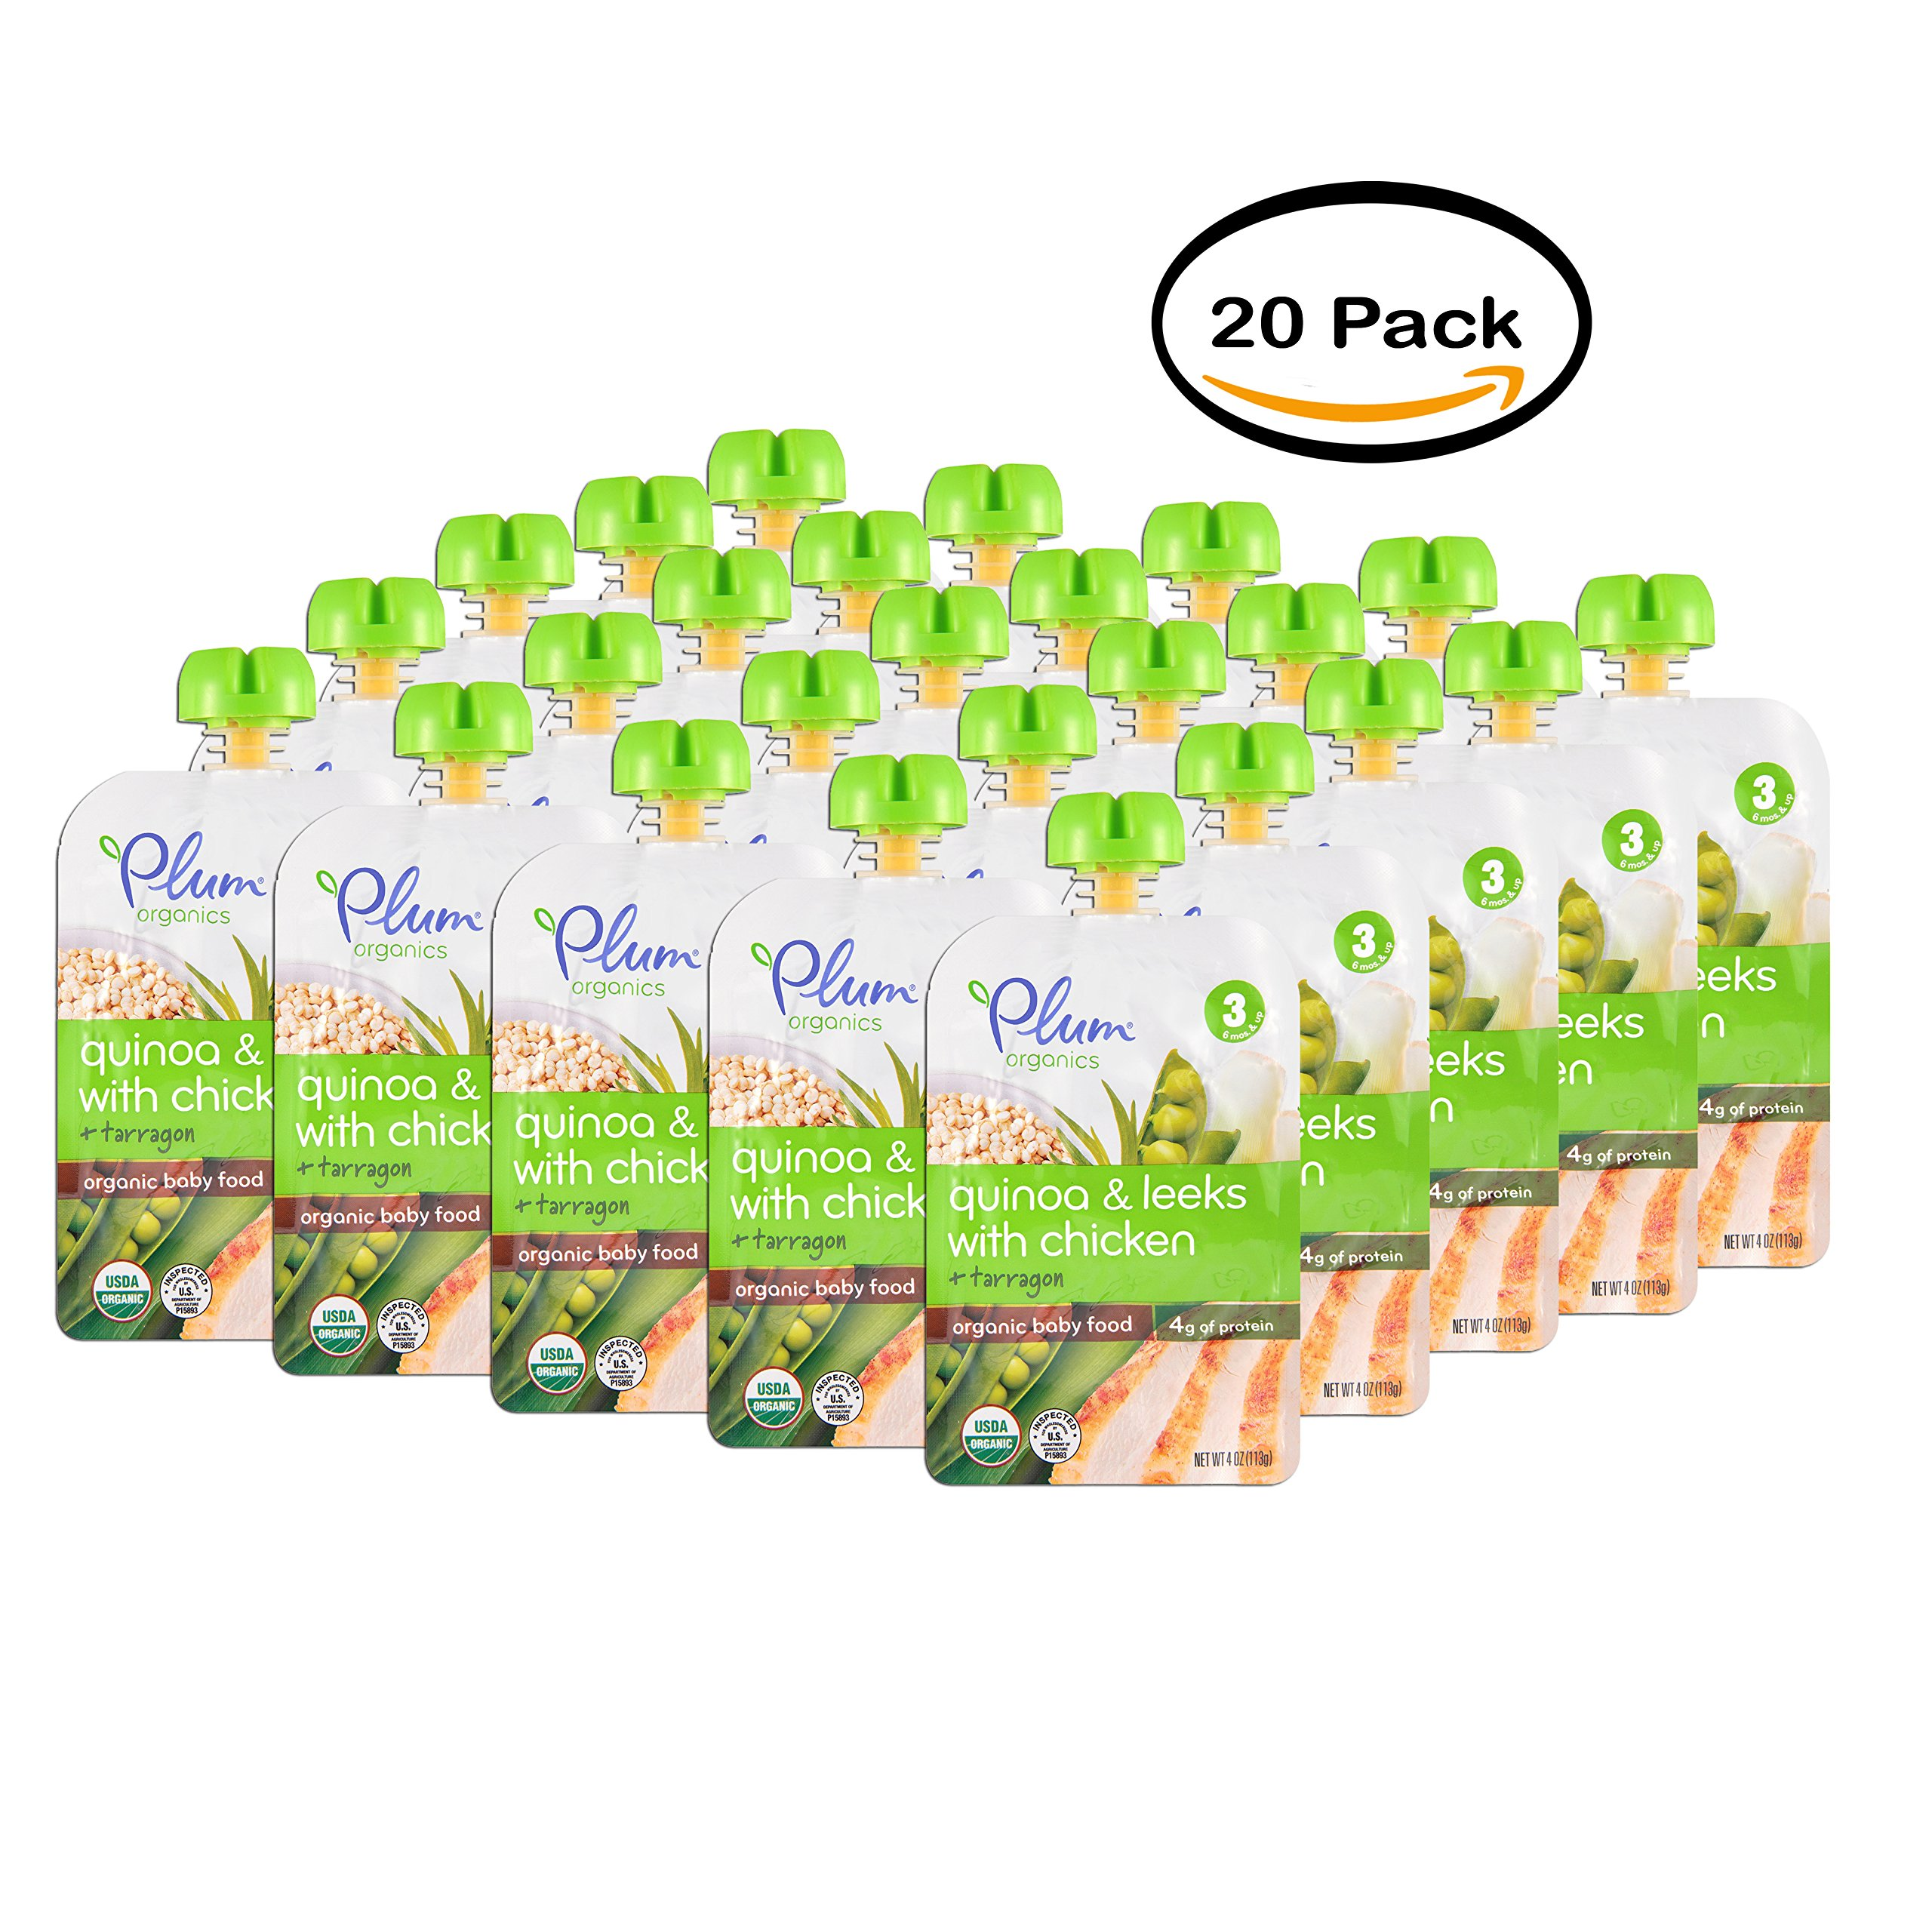 PACK OF 20 - Plum Organics stage 3 Quinoa & Leeks with Chicken + Tarragon Organic Baby Food 4 oz. Pouch